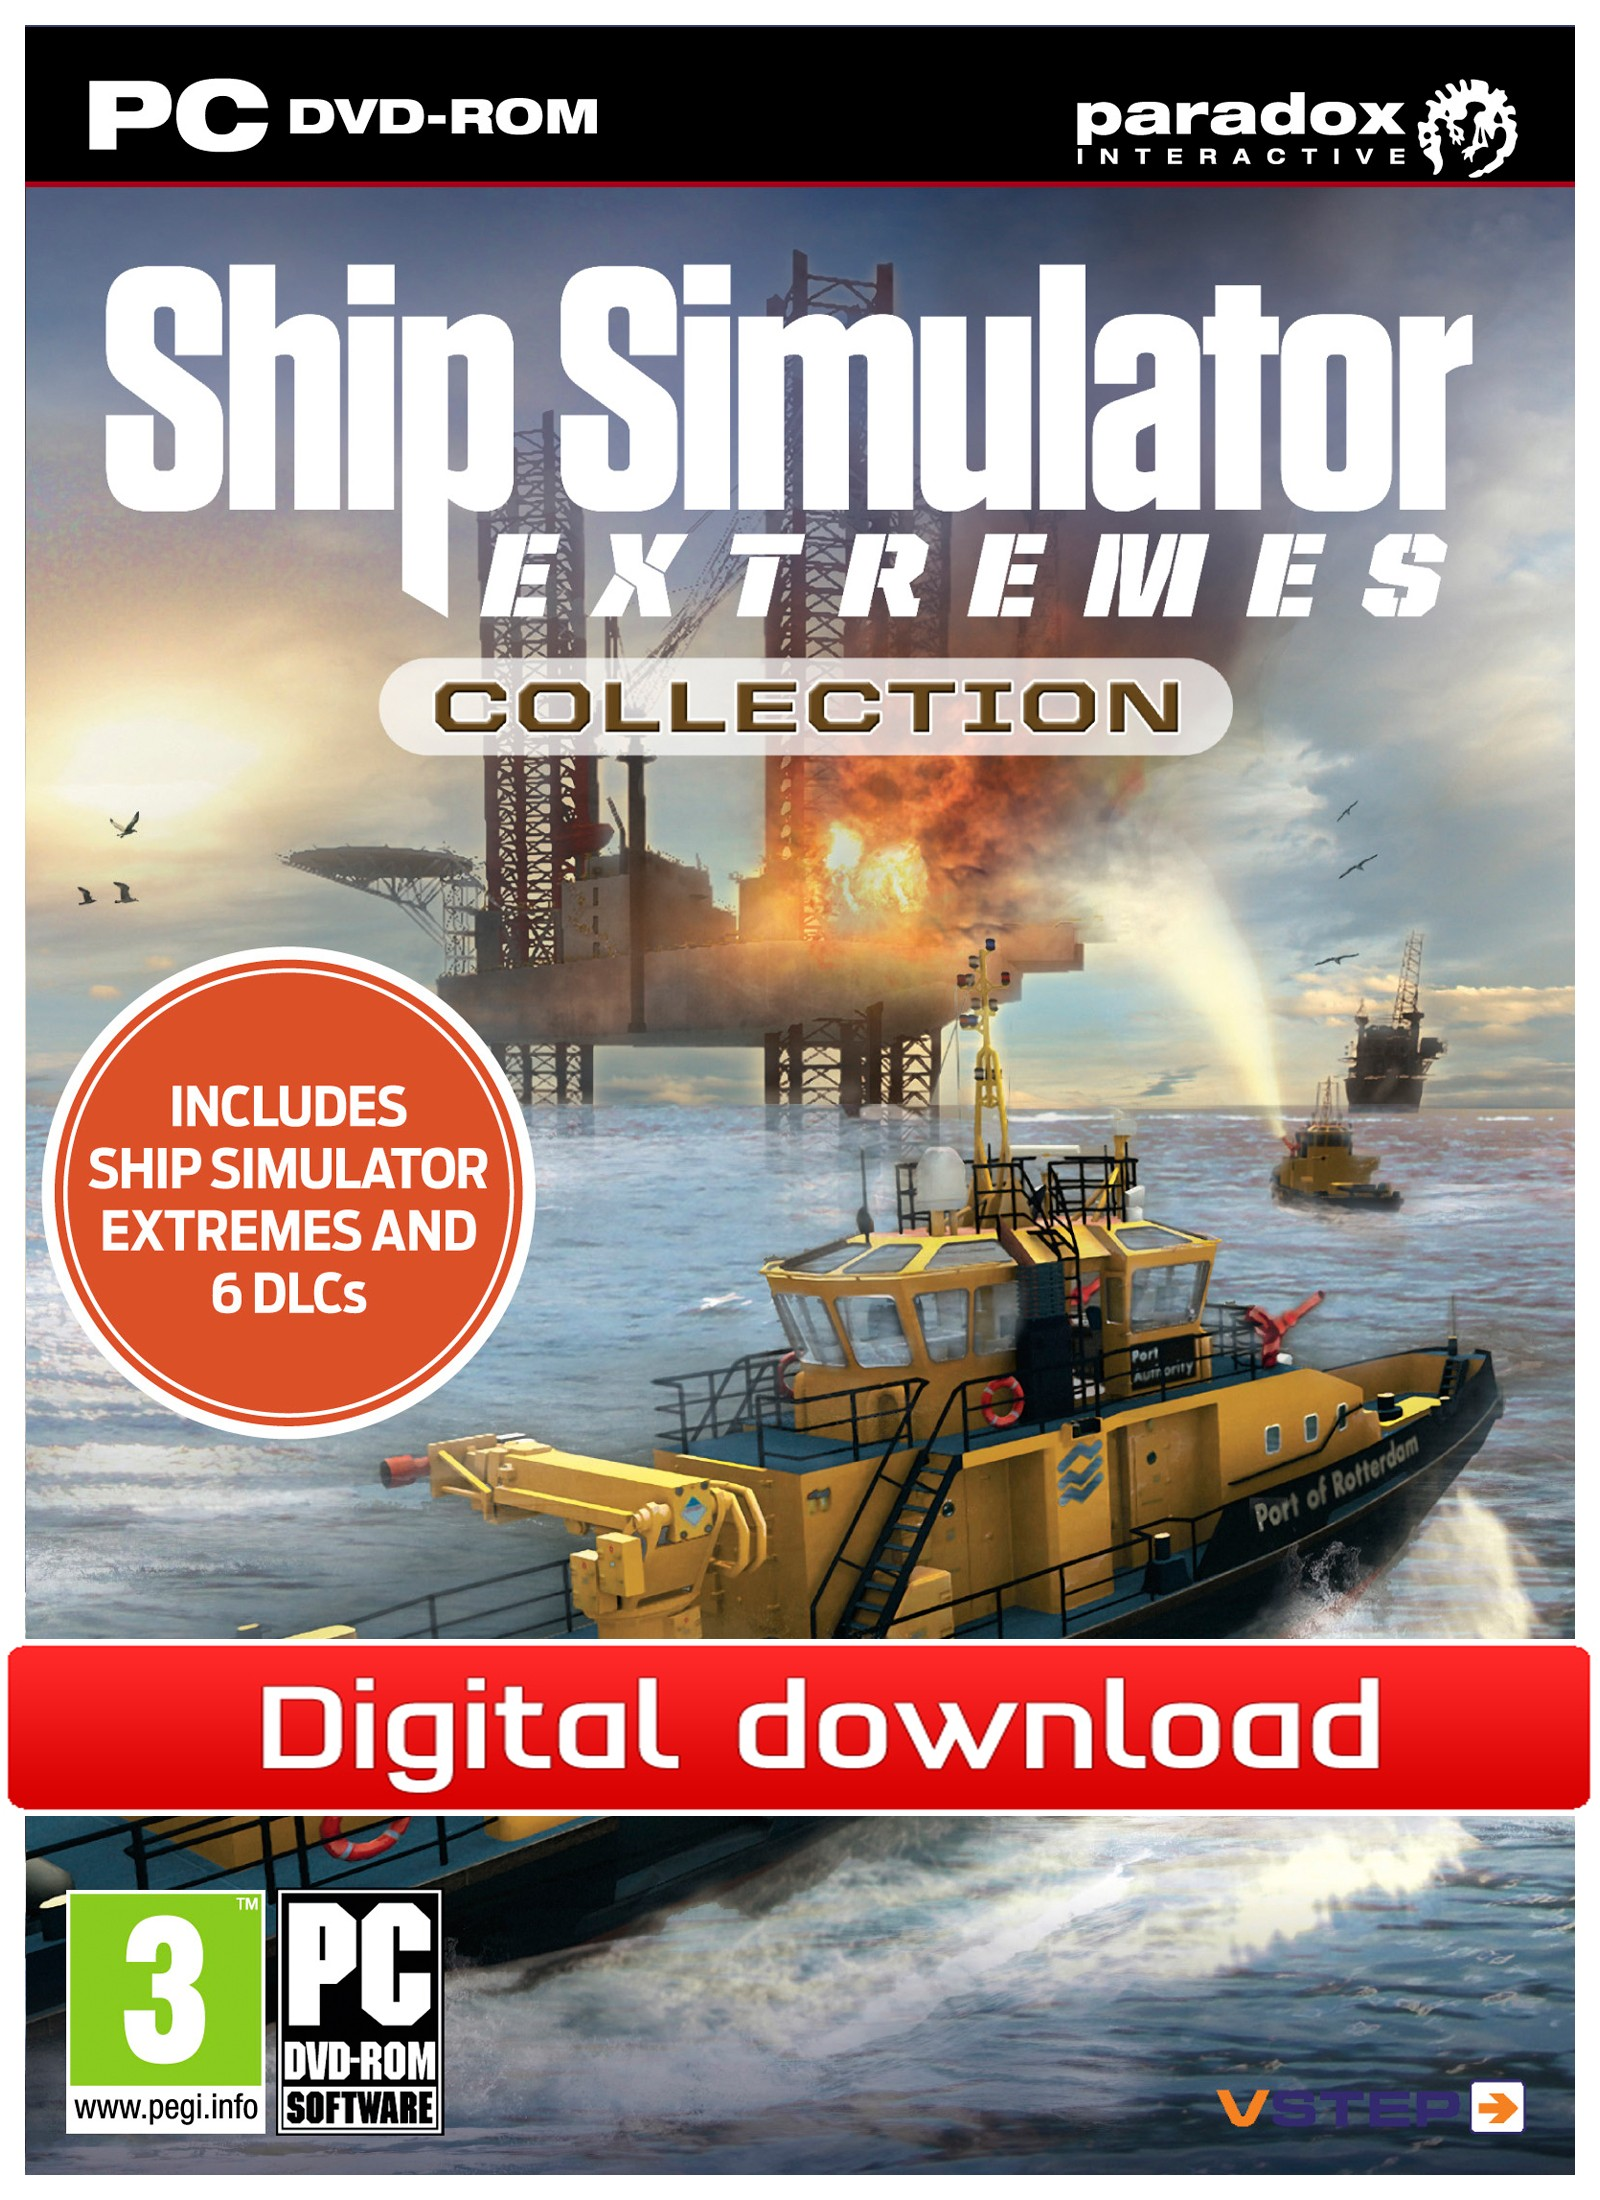 38671 : Ship Simulator Extremes Collection (PC nedlastning)